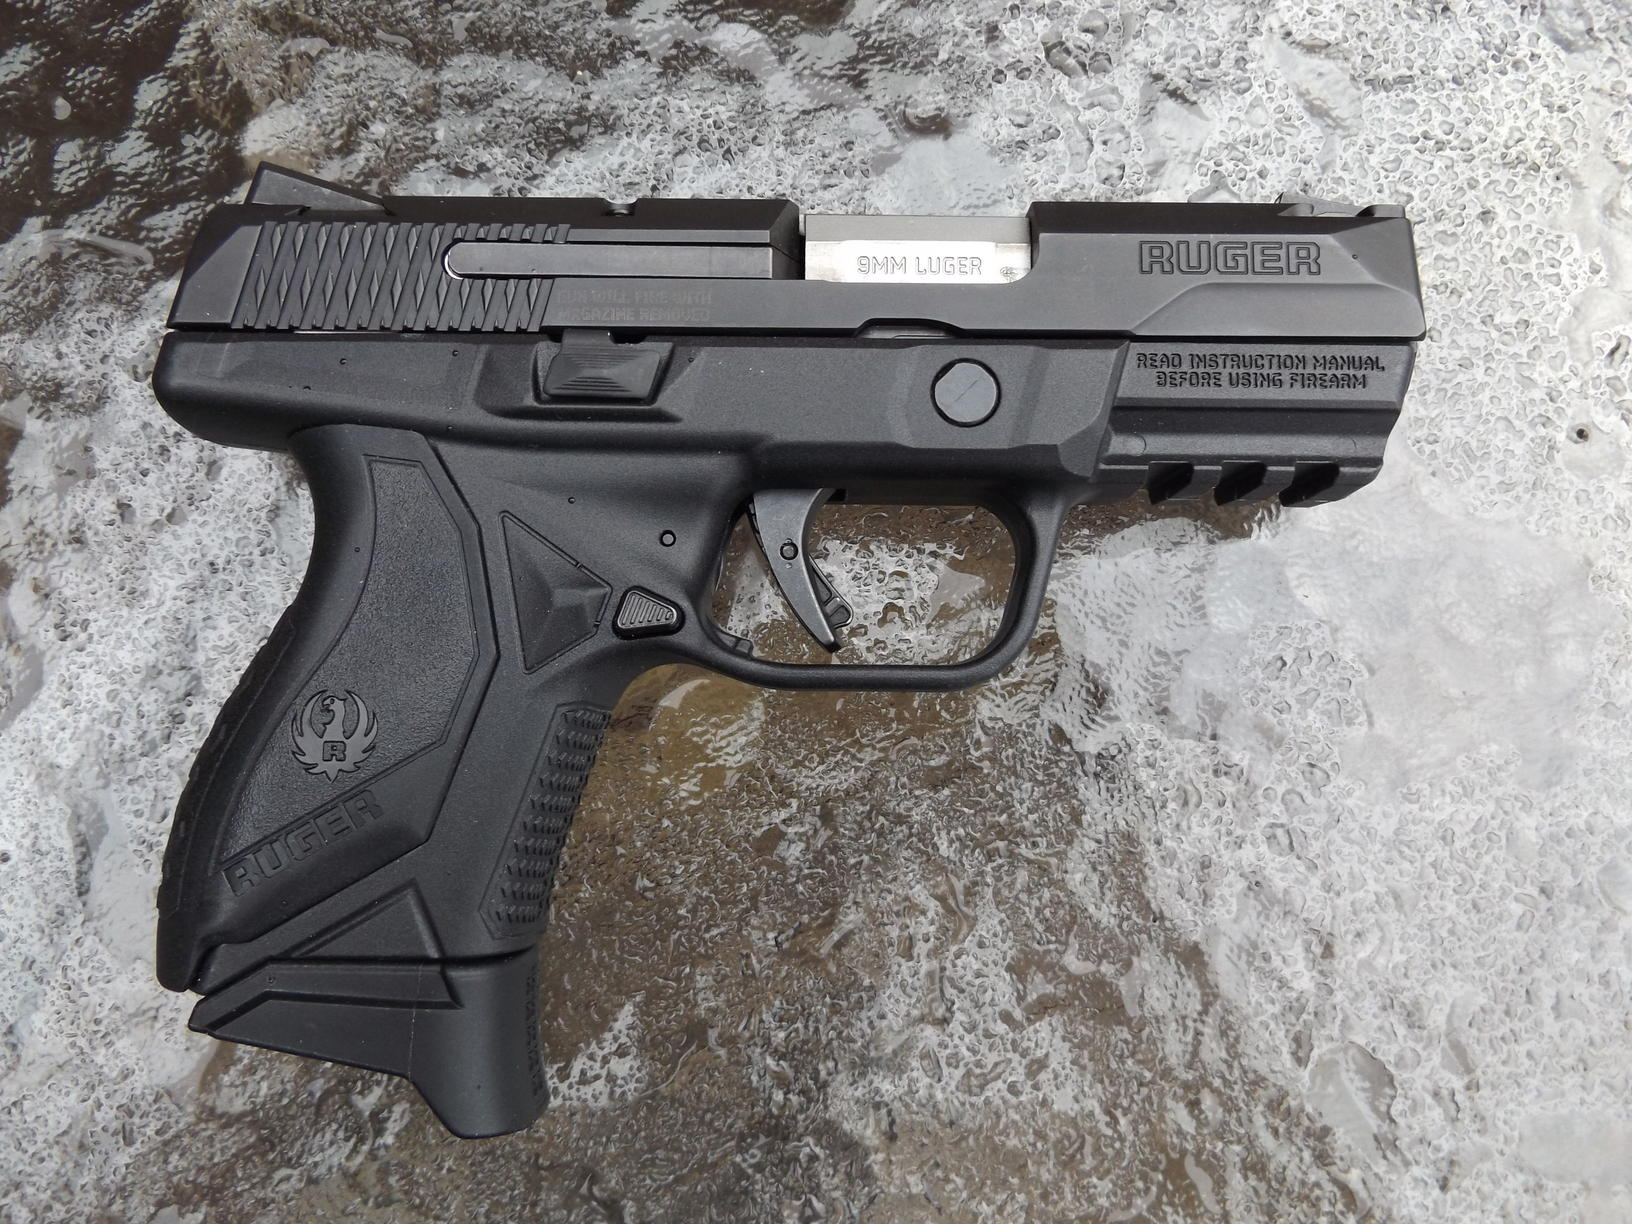 I Received The New Ruger American Pistol In 9mm Which Is Compact Model Ll Tell You What This Hands Down My Favorite Handgun